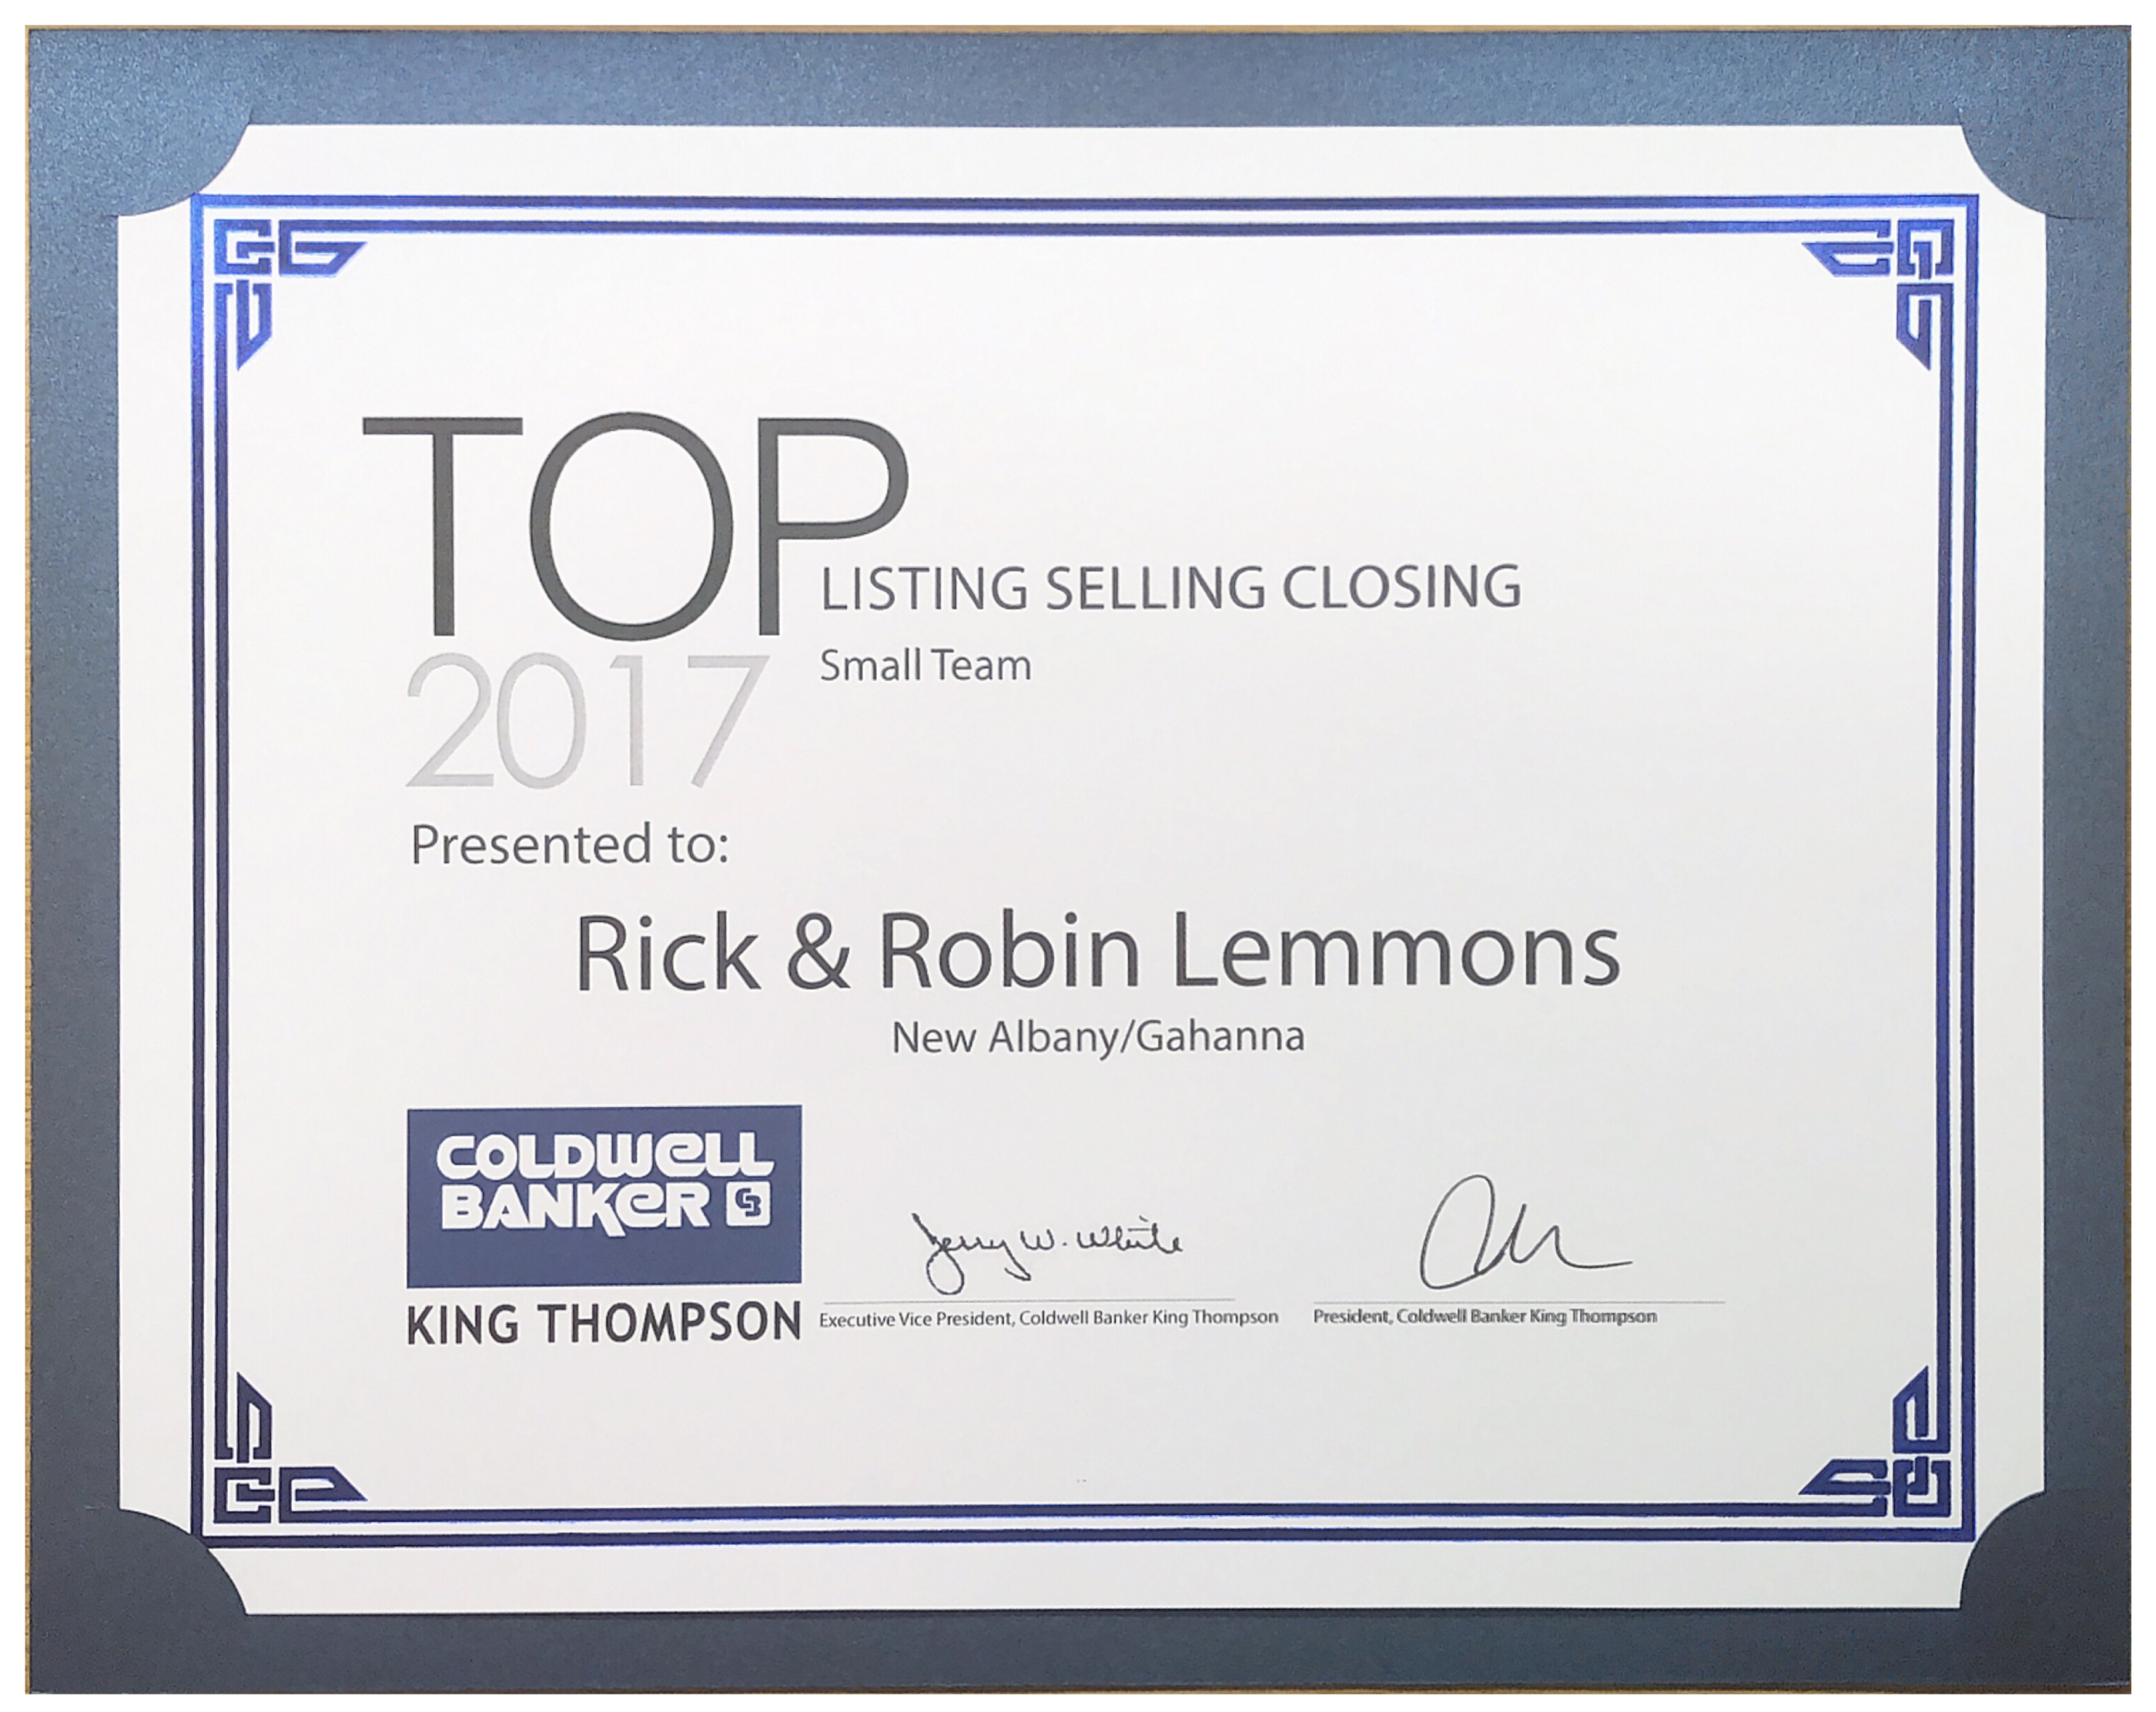 2017 Top Listing Selling Closing